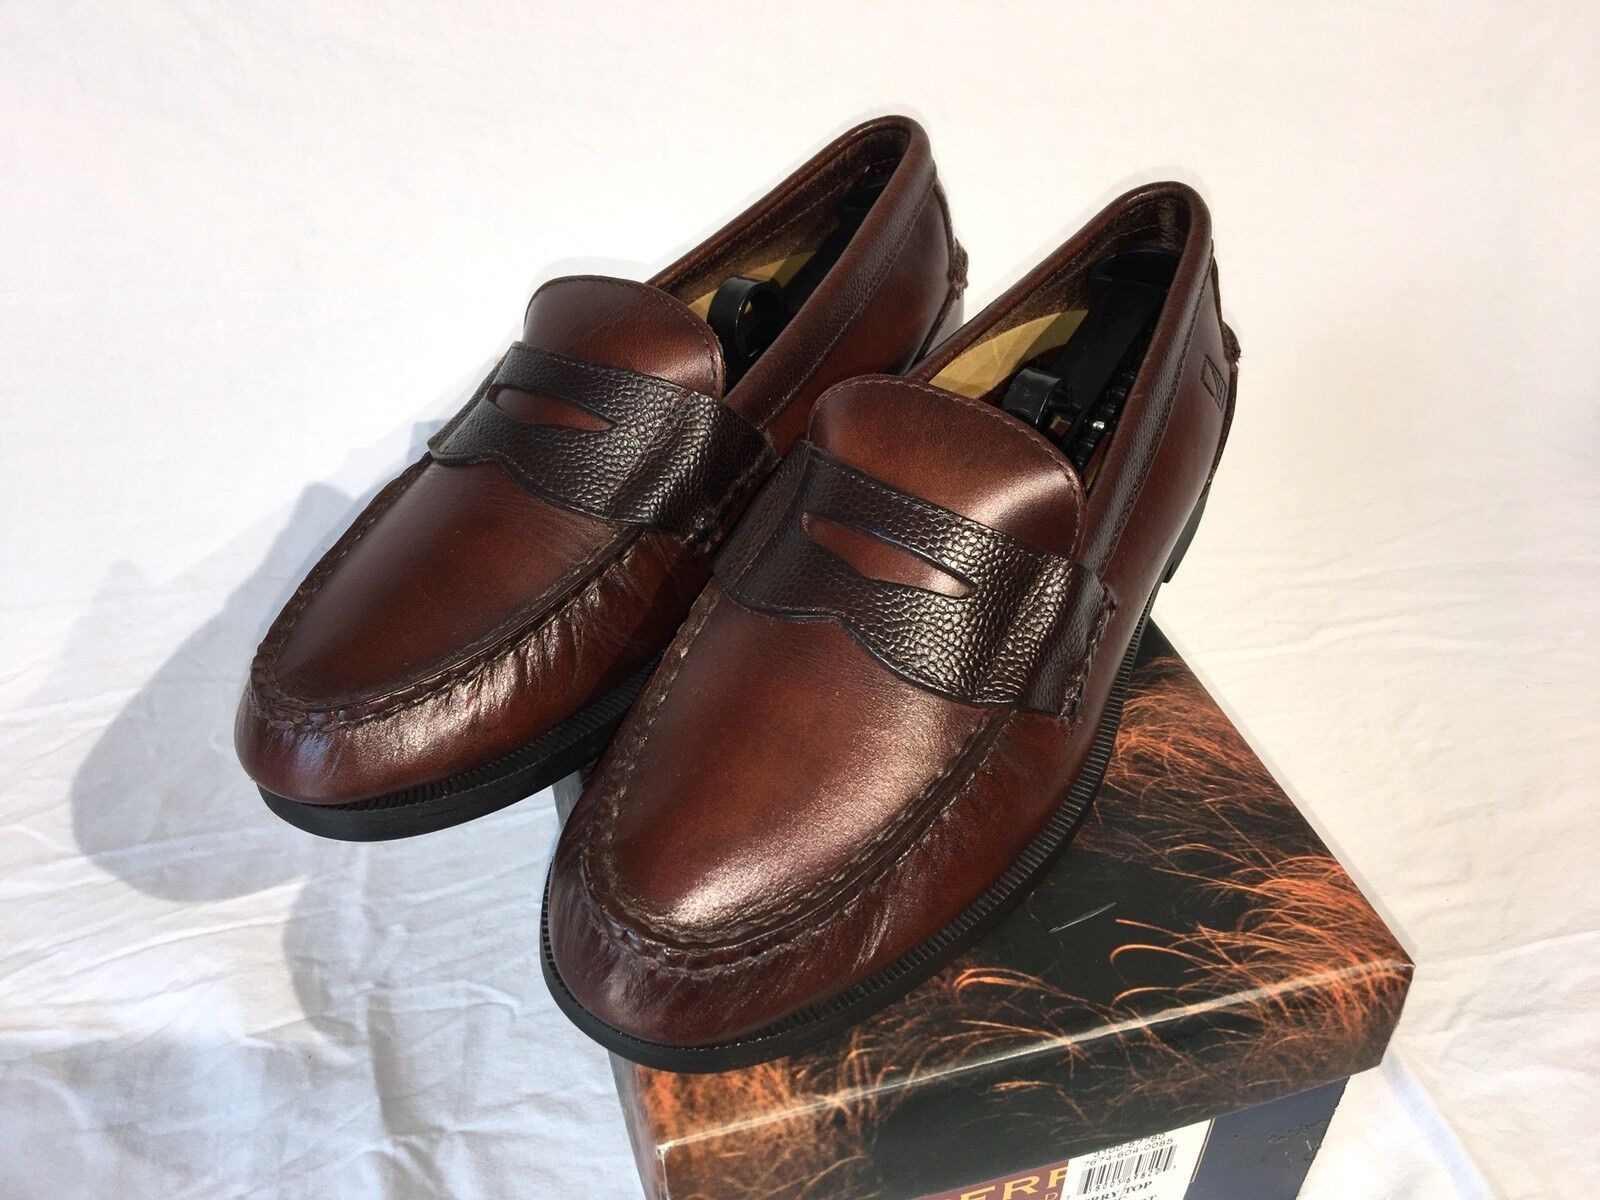 SPERRY Waterproof Penny Loafer 2-Tone Leather 8.5 Fits 9 US FREE Shipping in USA